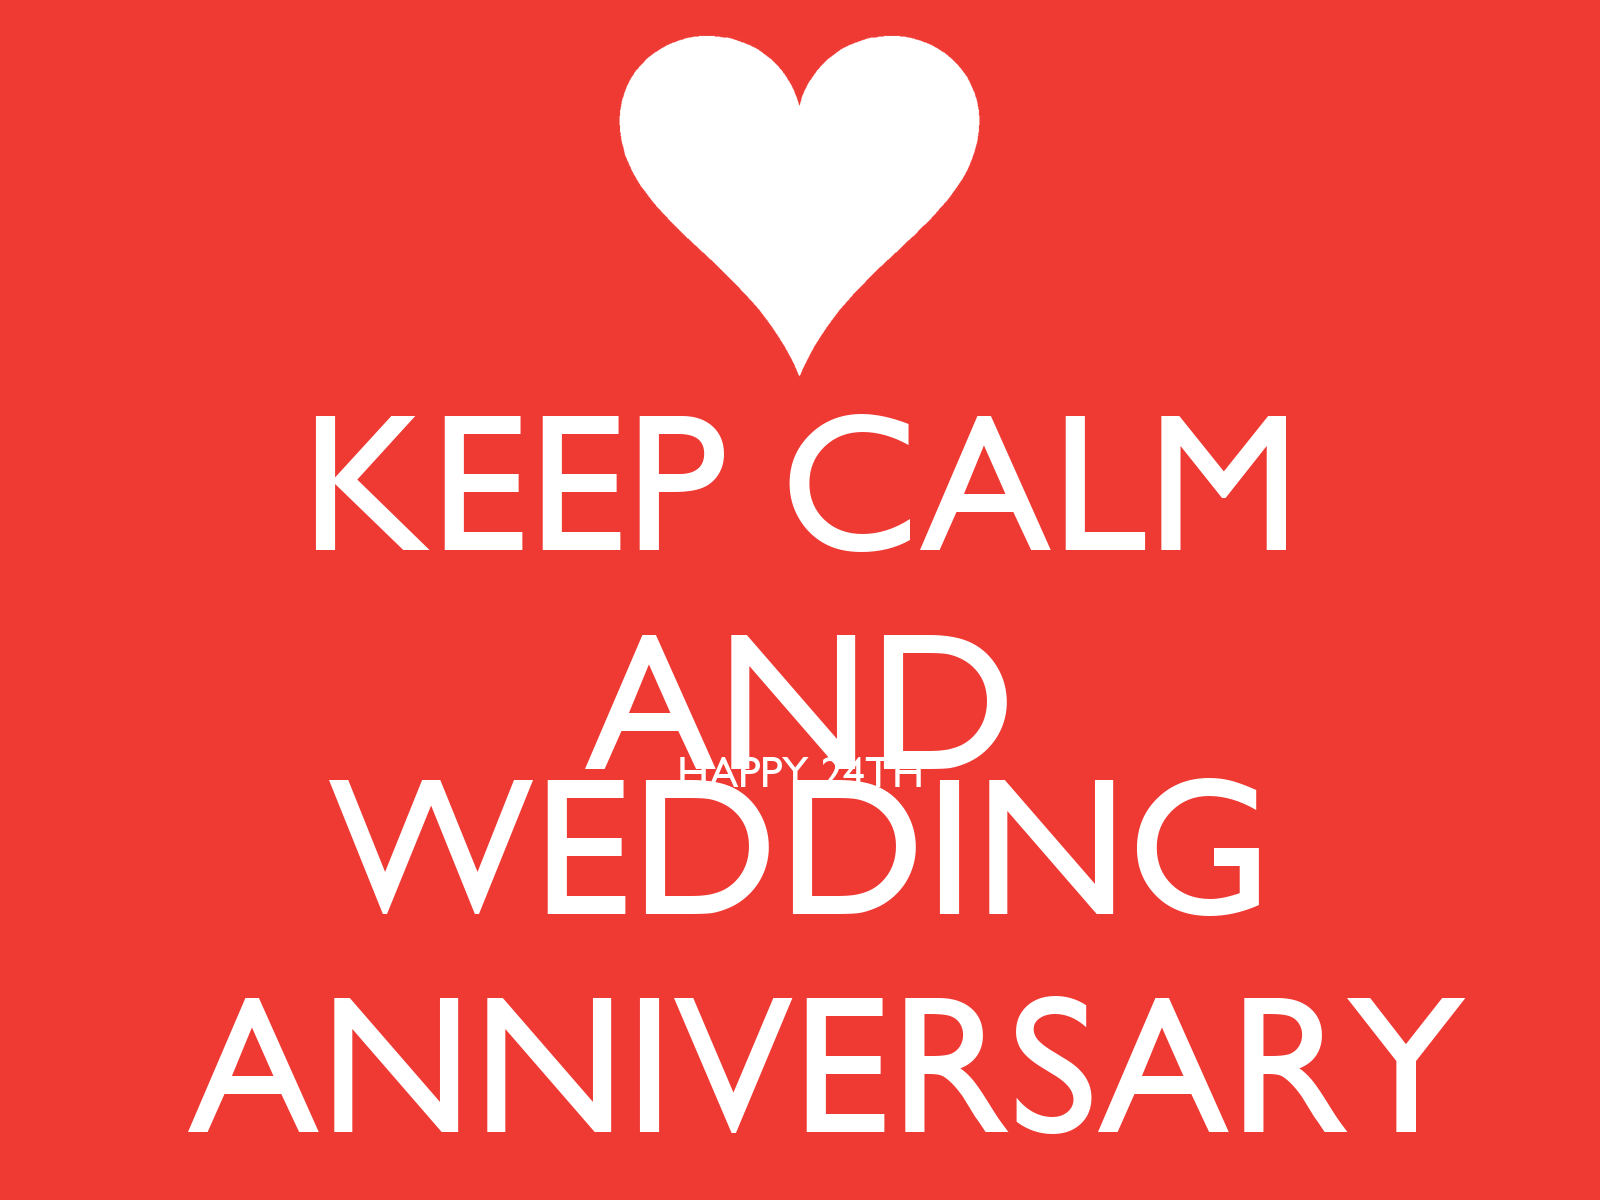 24 Wedding Anniversary Gift: KEEP CALM AND HAPPY 24TH WEDDING ANNIVERSARY Poster